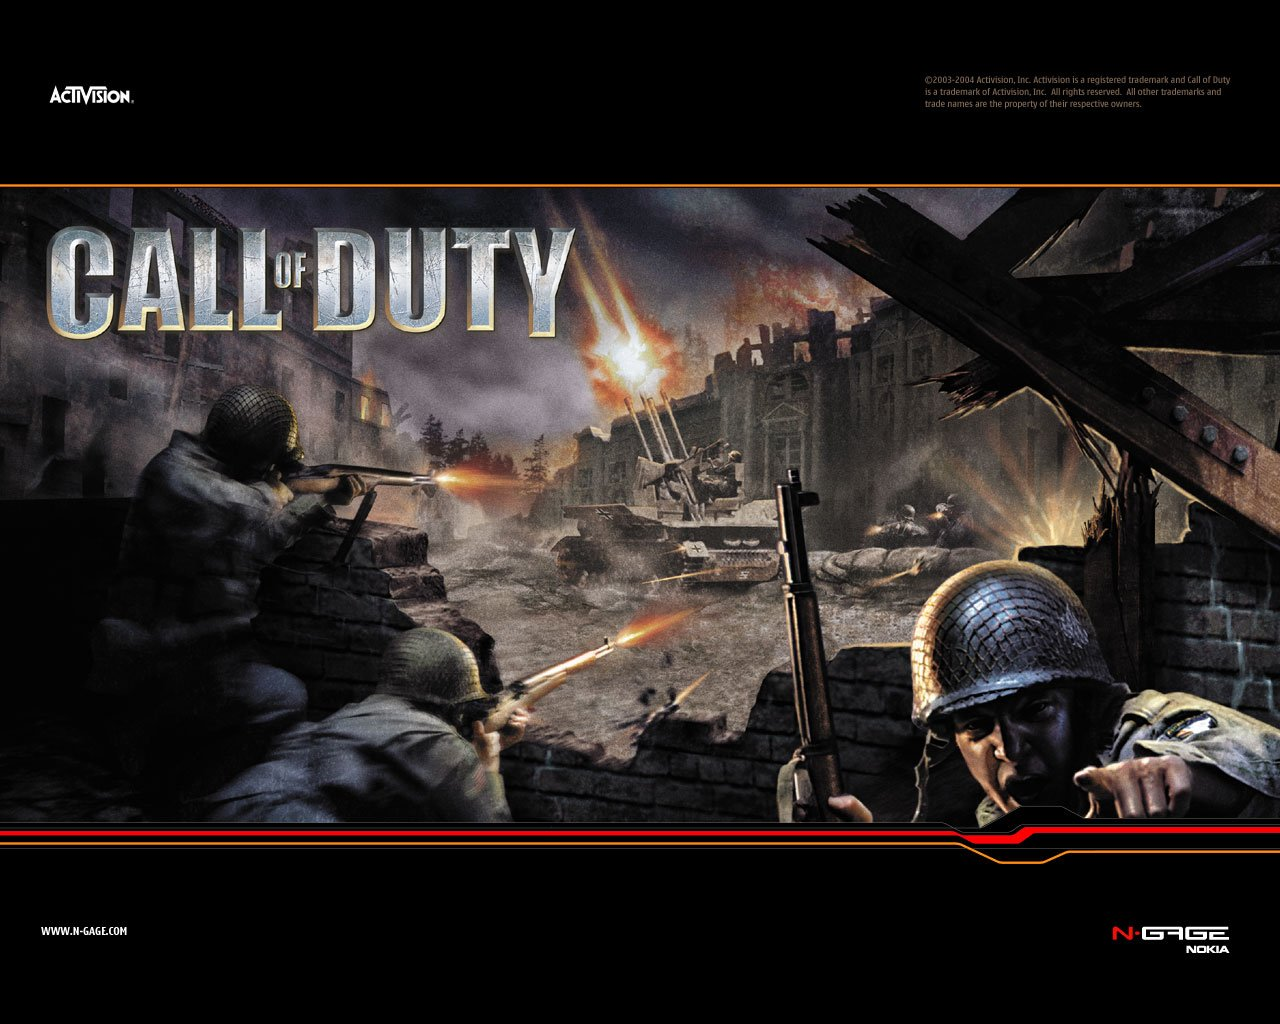 Call of Duty 2004 promotional art   MobyGames 1280x1024